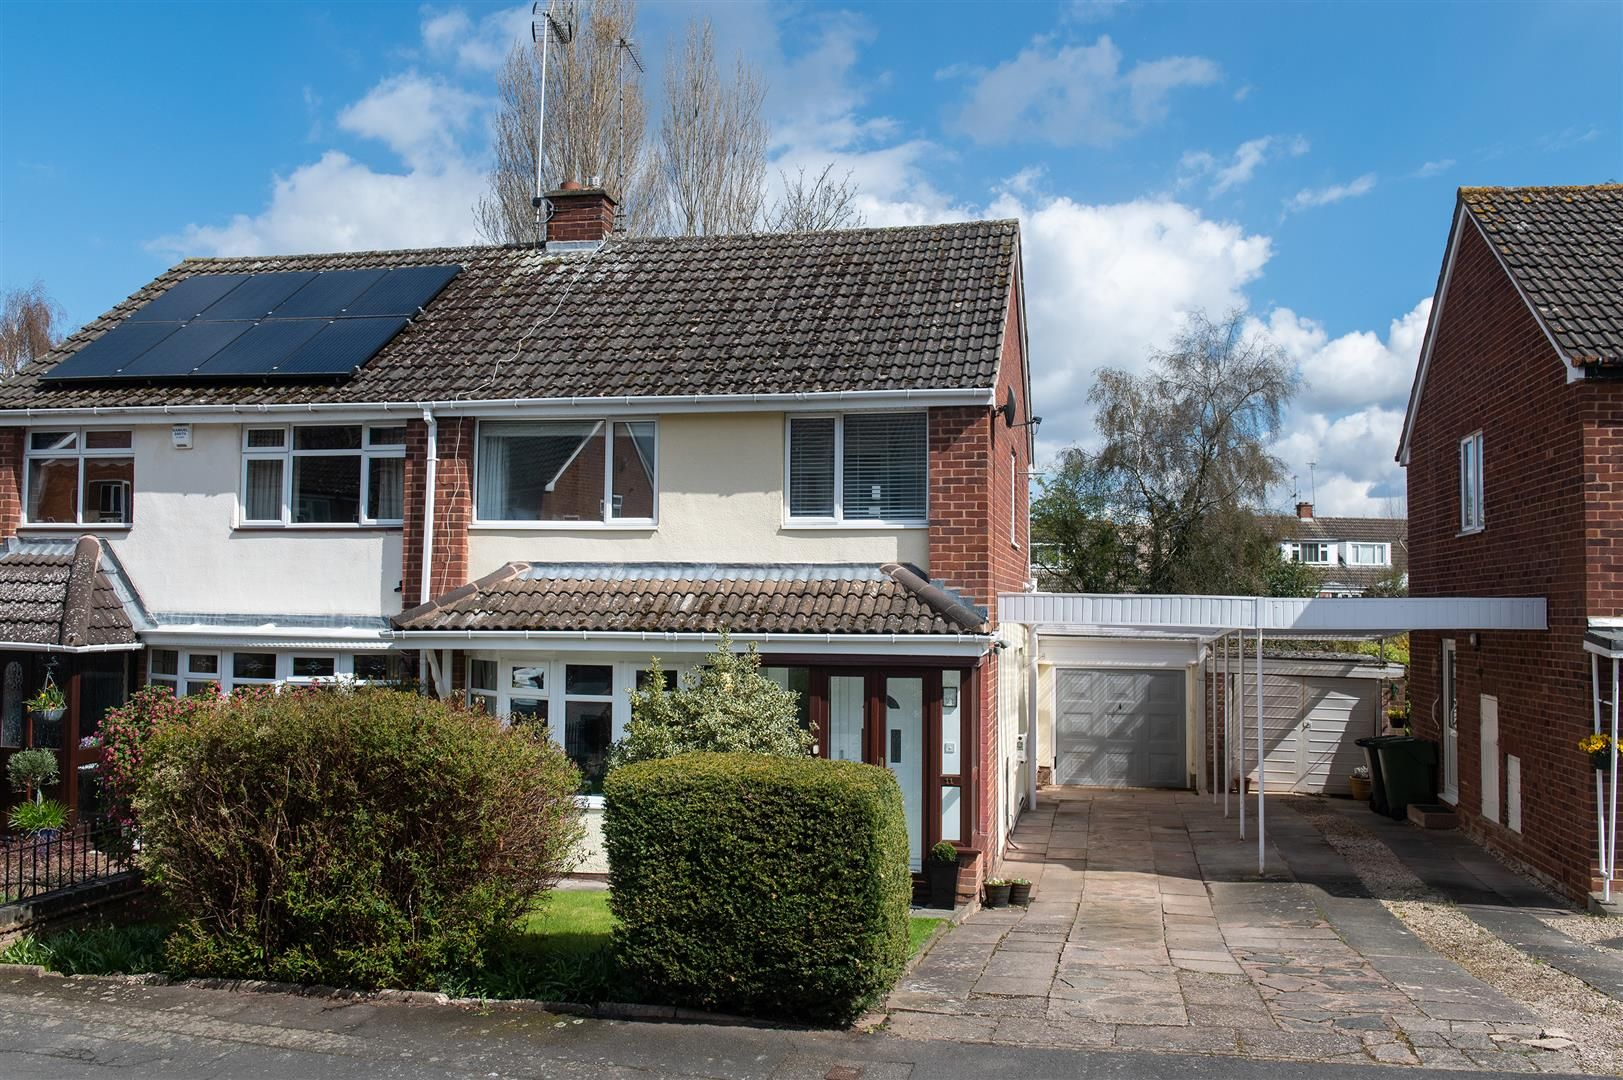 3 bed semi-detached for sale in Hagley  - Property Image 34